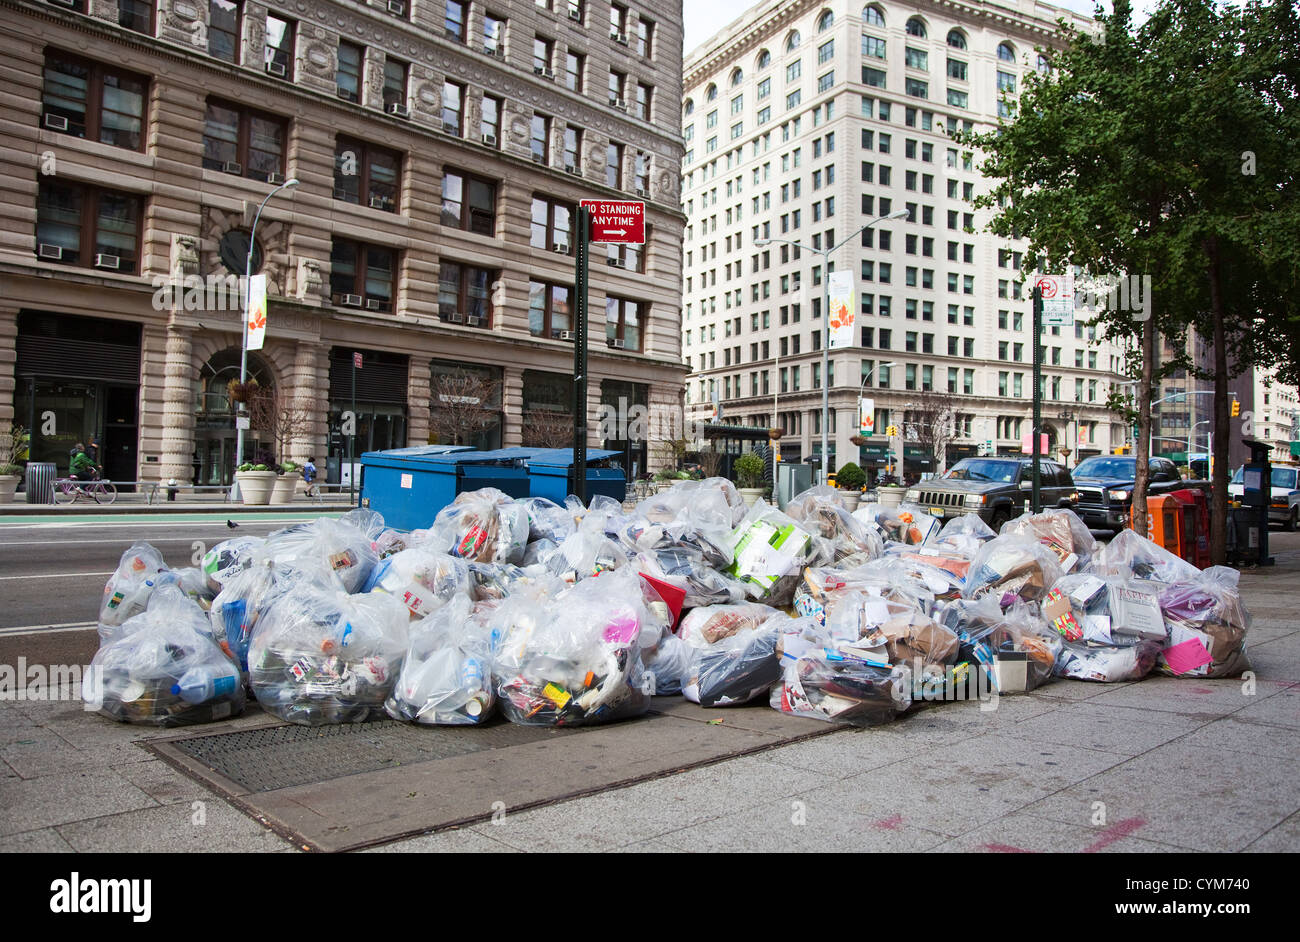 Large Amount of Rubbish Bags in the Streets of New York City - Stock Image